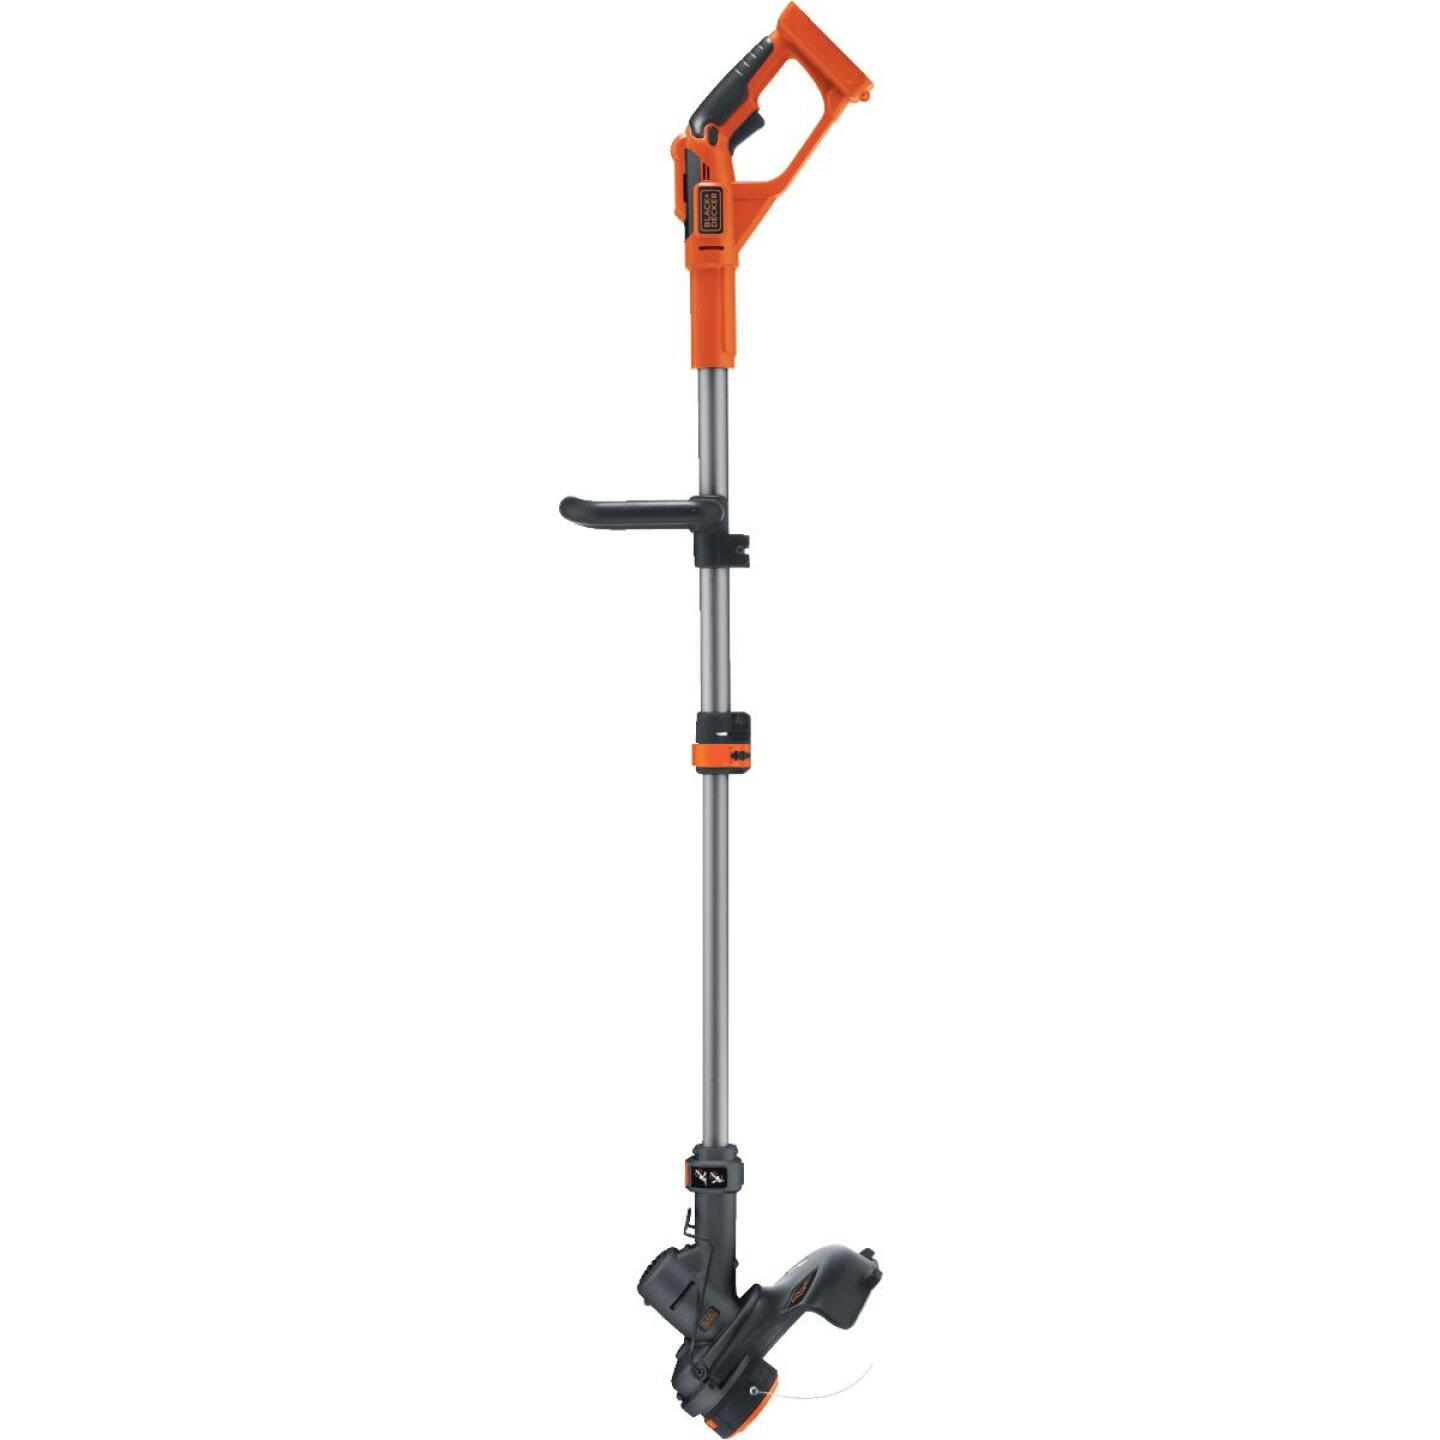 Black & Decker 40V MAX 13 In. Lithium Ion Straight Cordless String Trimmer Image 5